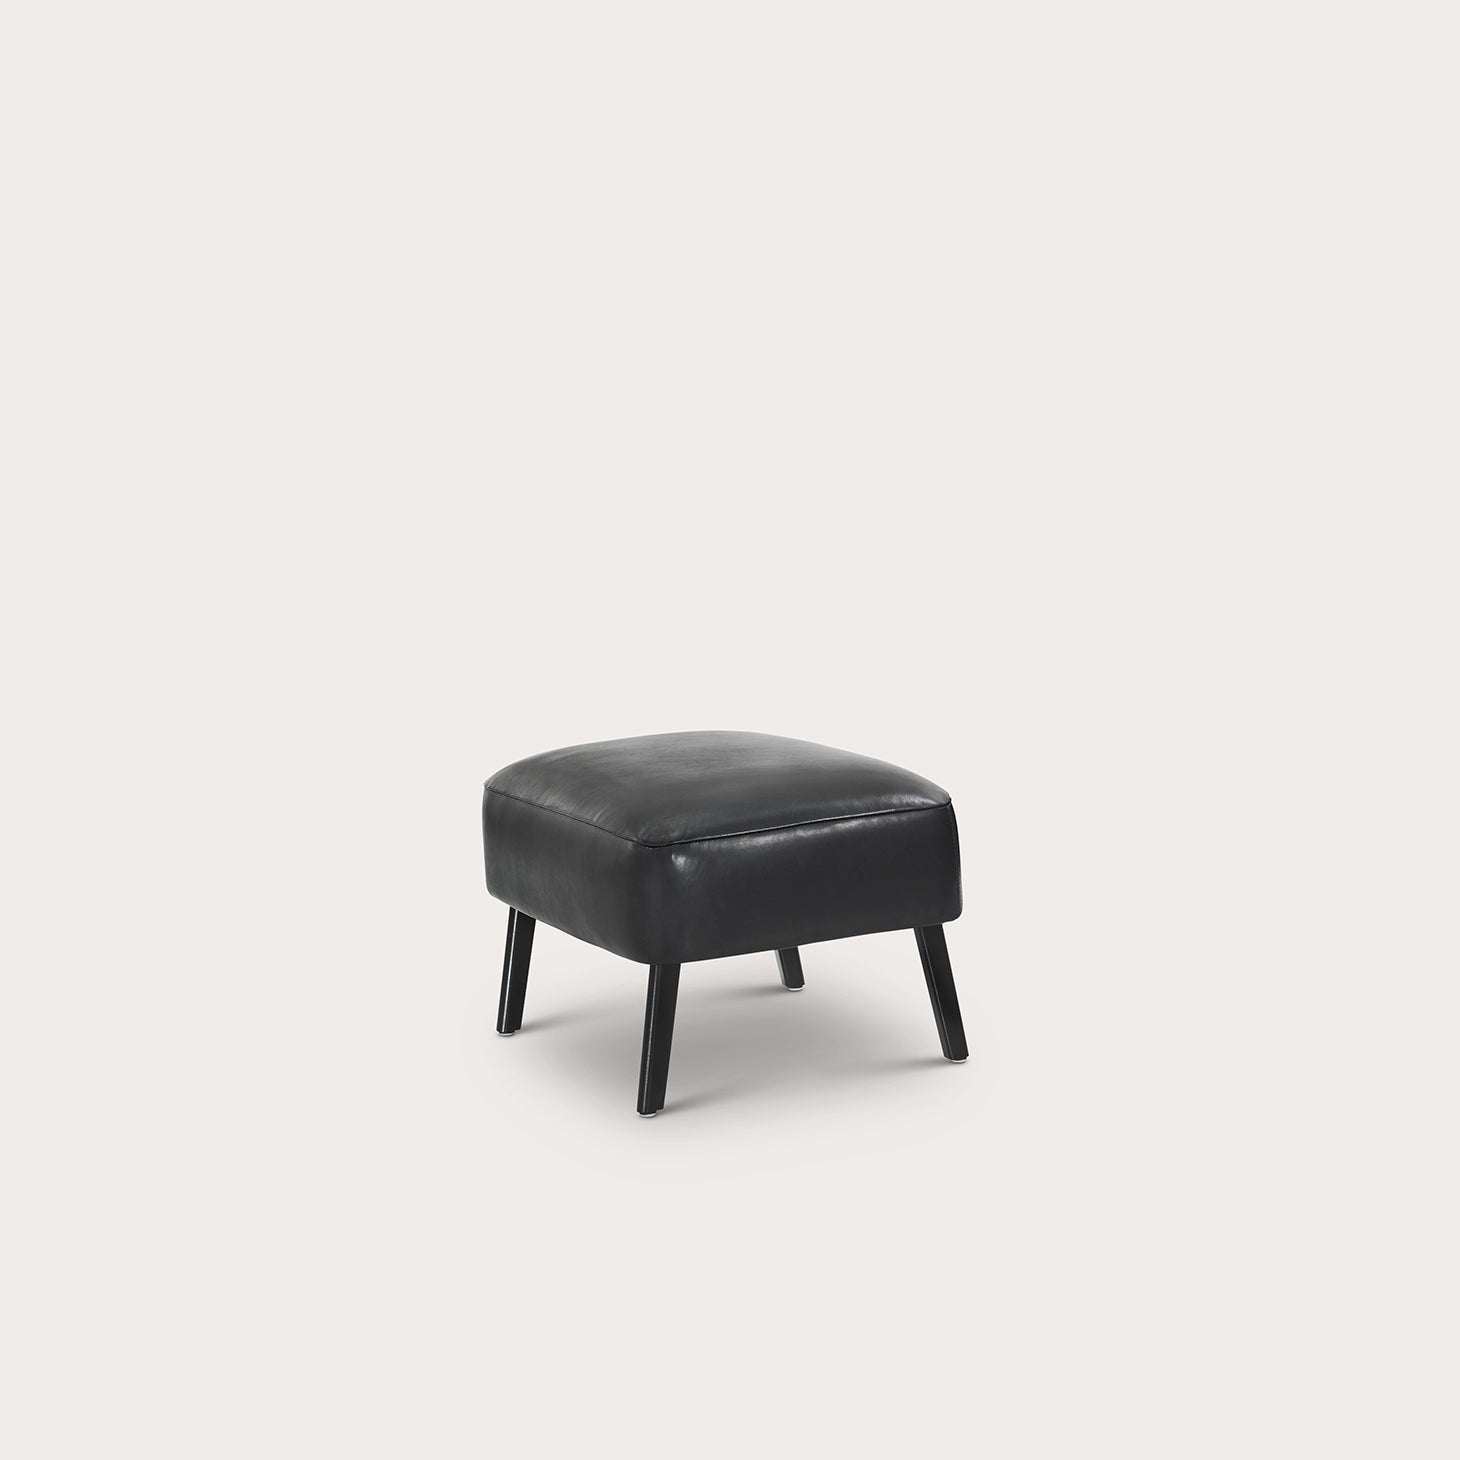 Mono Ottoman Seating Marco Dessi Designer Furniture Sku: 758-240-10029